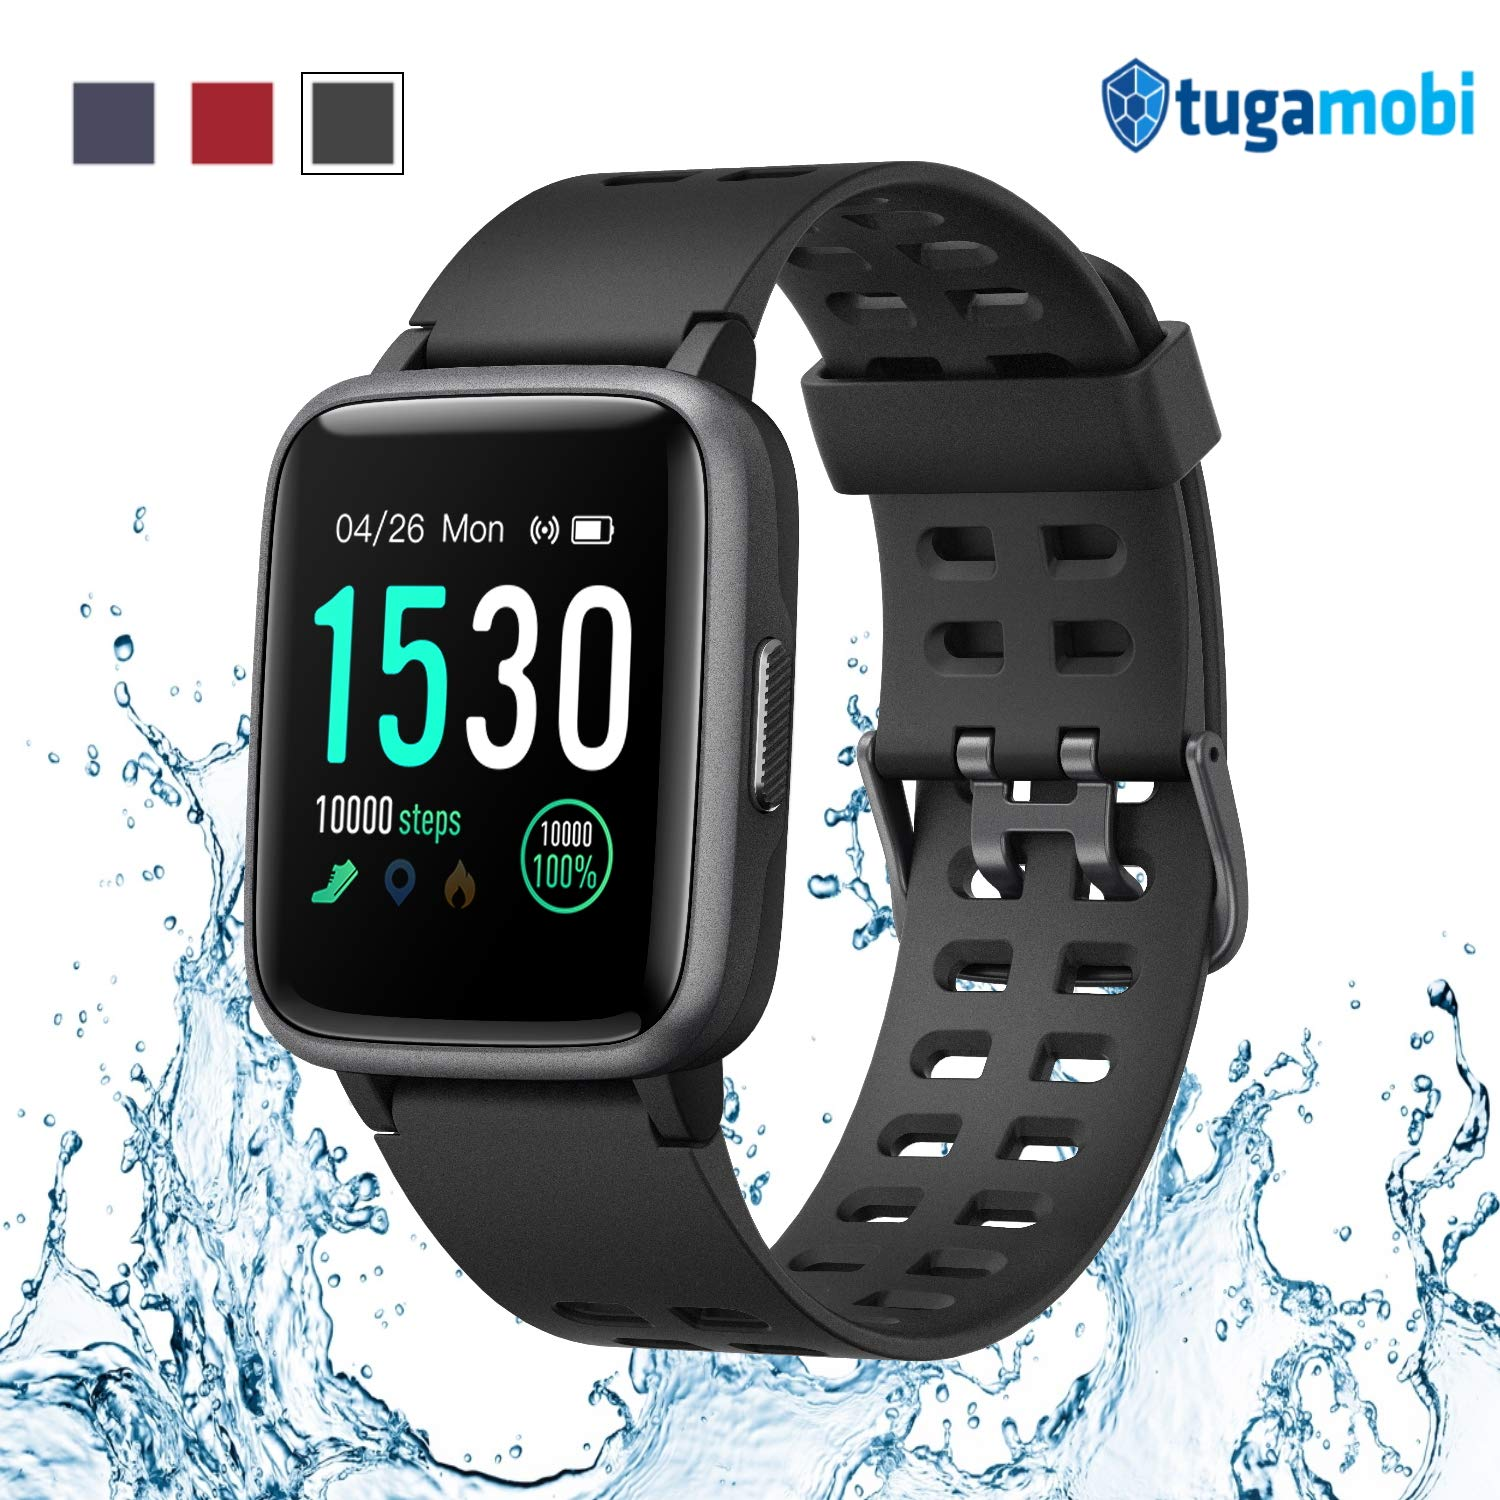 tugamobi Smart Band SB501 - Fitness Tracker, Touch Screen,Tracker with Heart Rate Monitor,5 ATM Waterproof Smart Fitness Band with Step Tracker,Calorie Counter,Alarm Clock,14 Modes (Black) by tugamobi